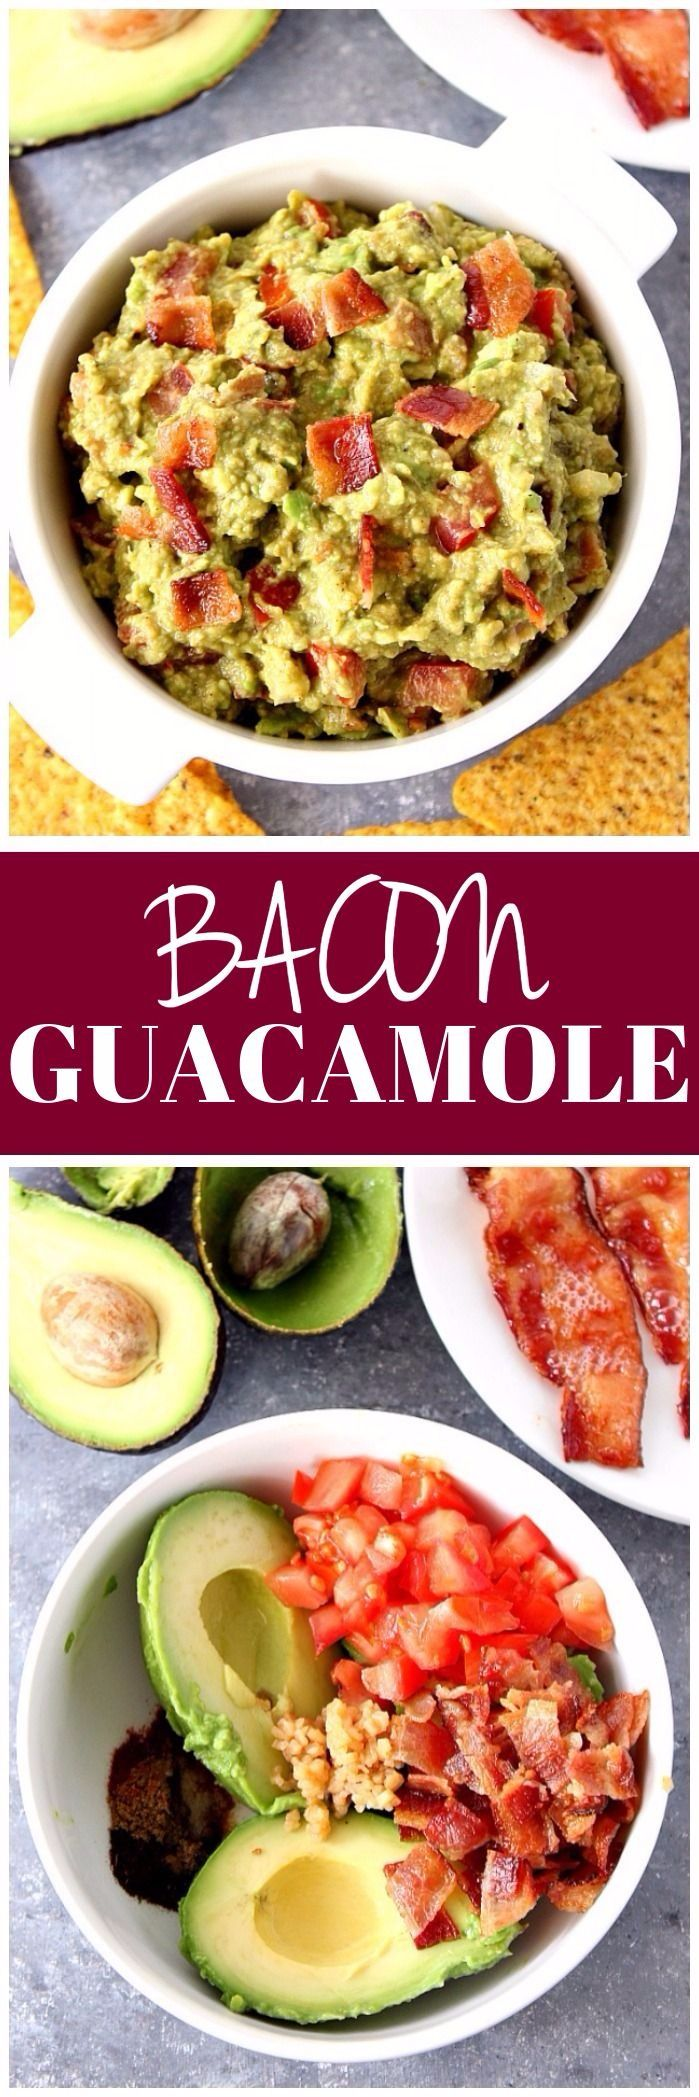 Bacon Guacamole Recipe - our favorite guacamole recipe that's perfect for parties and game day season! You will love the addition of bacon!